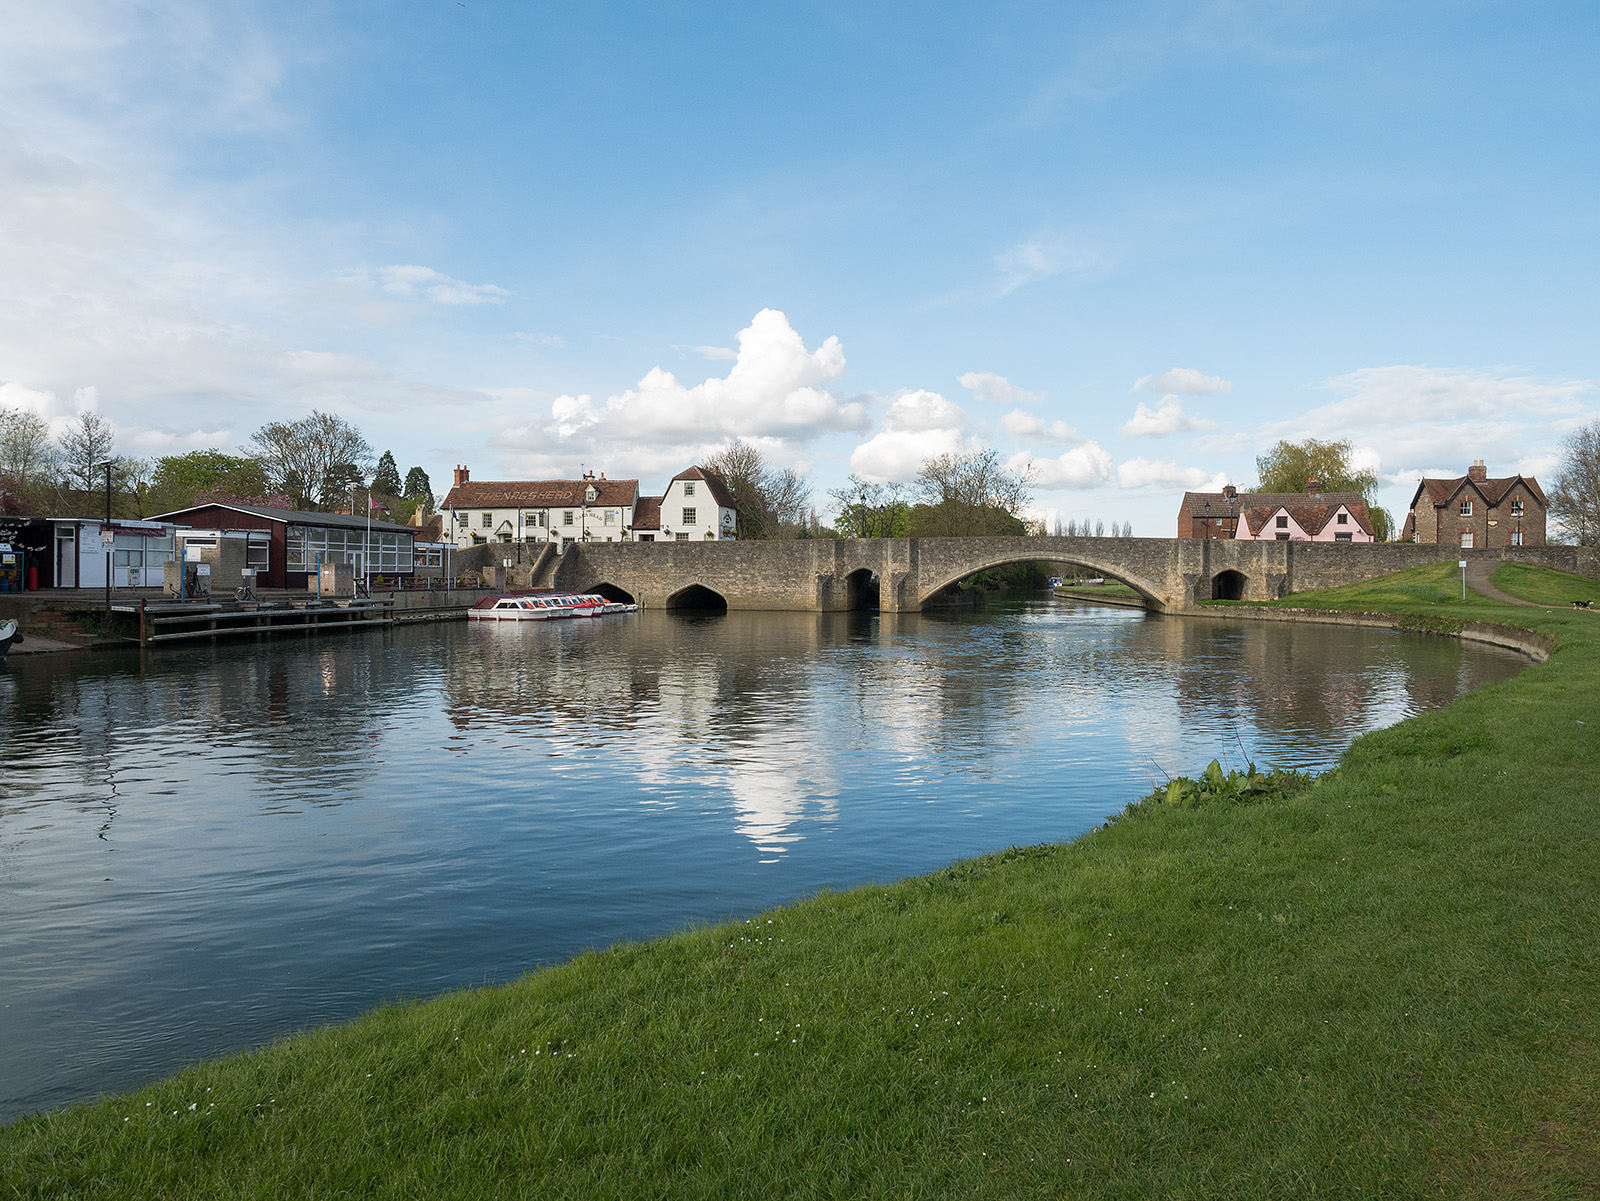 Bridge across the Thames at Abingdon